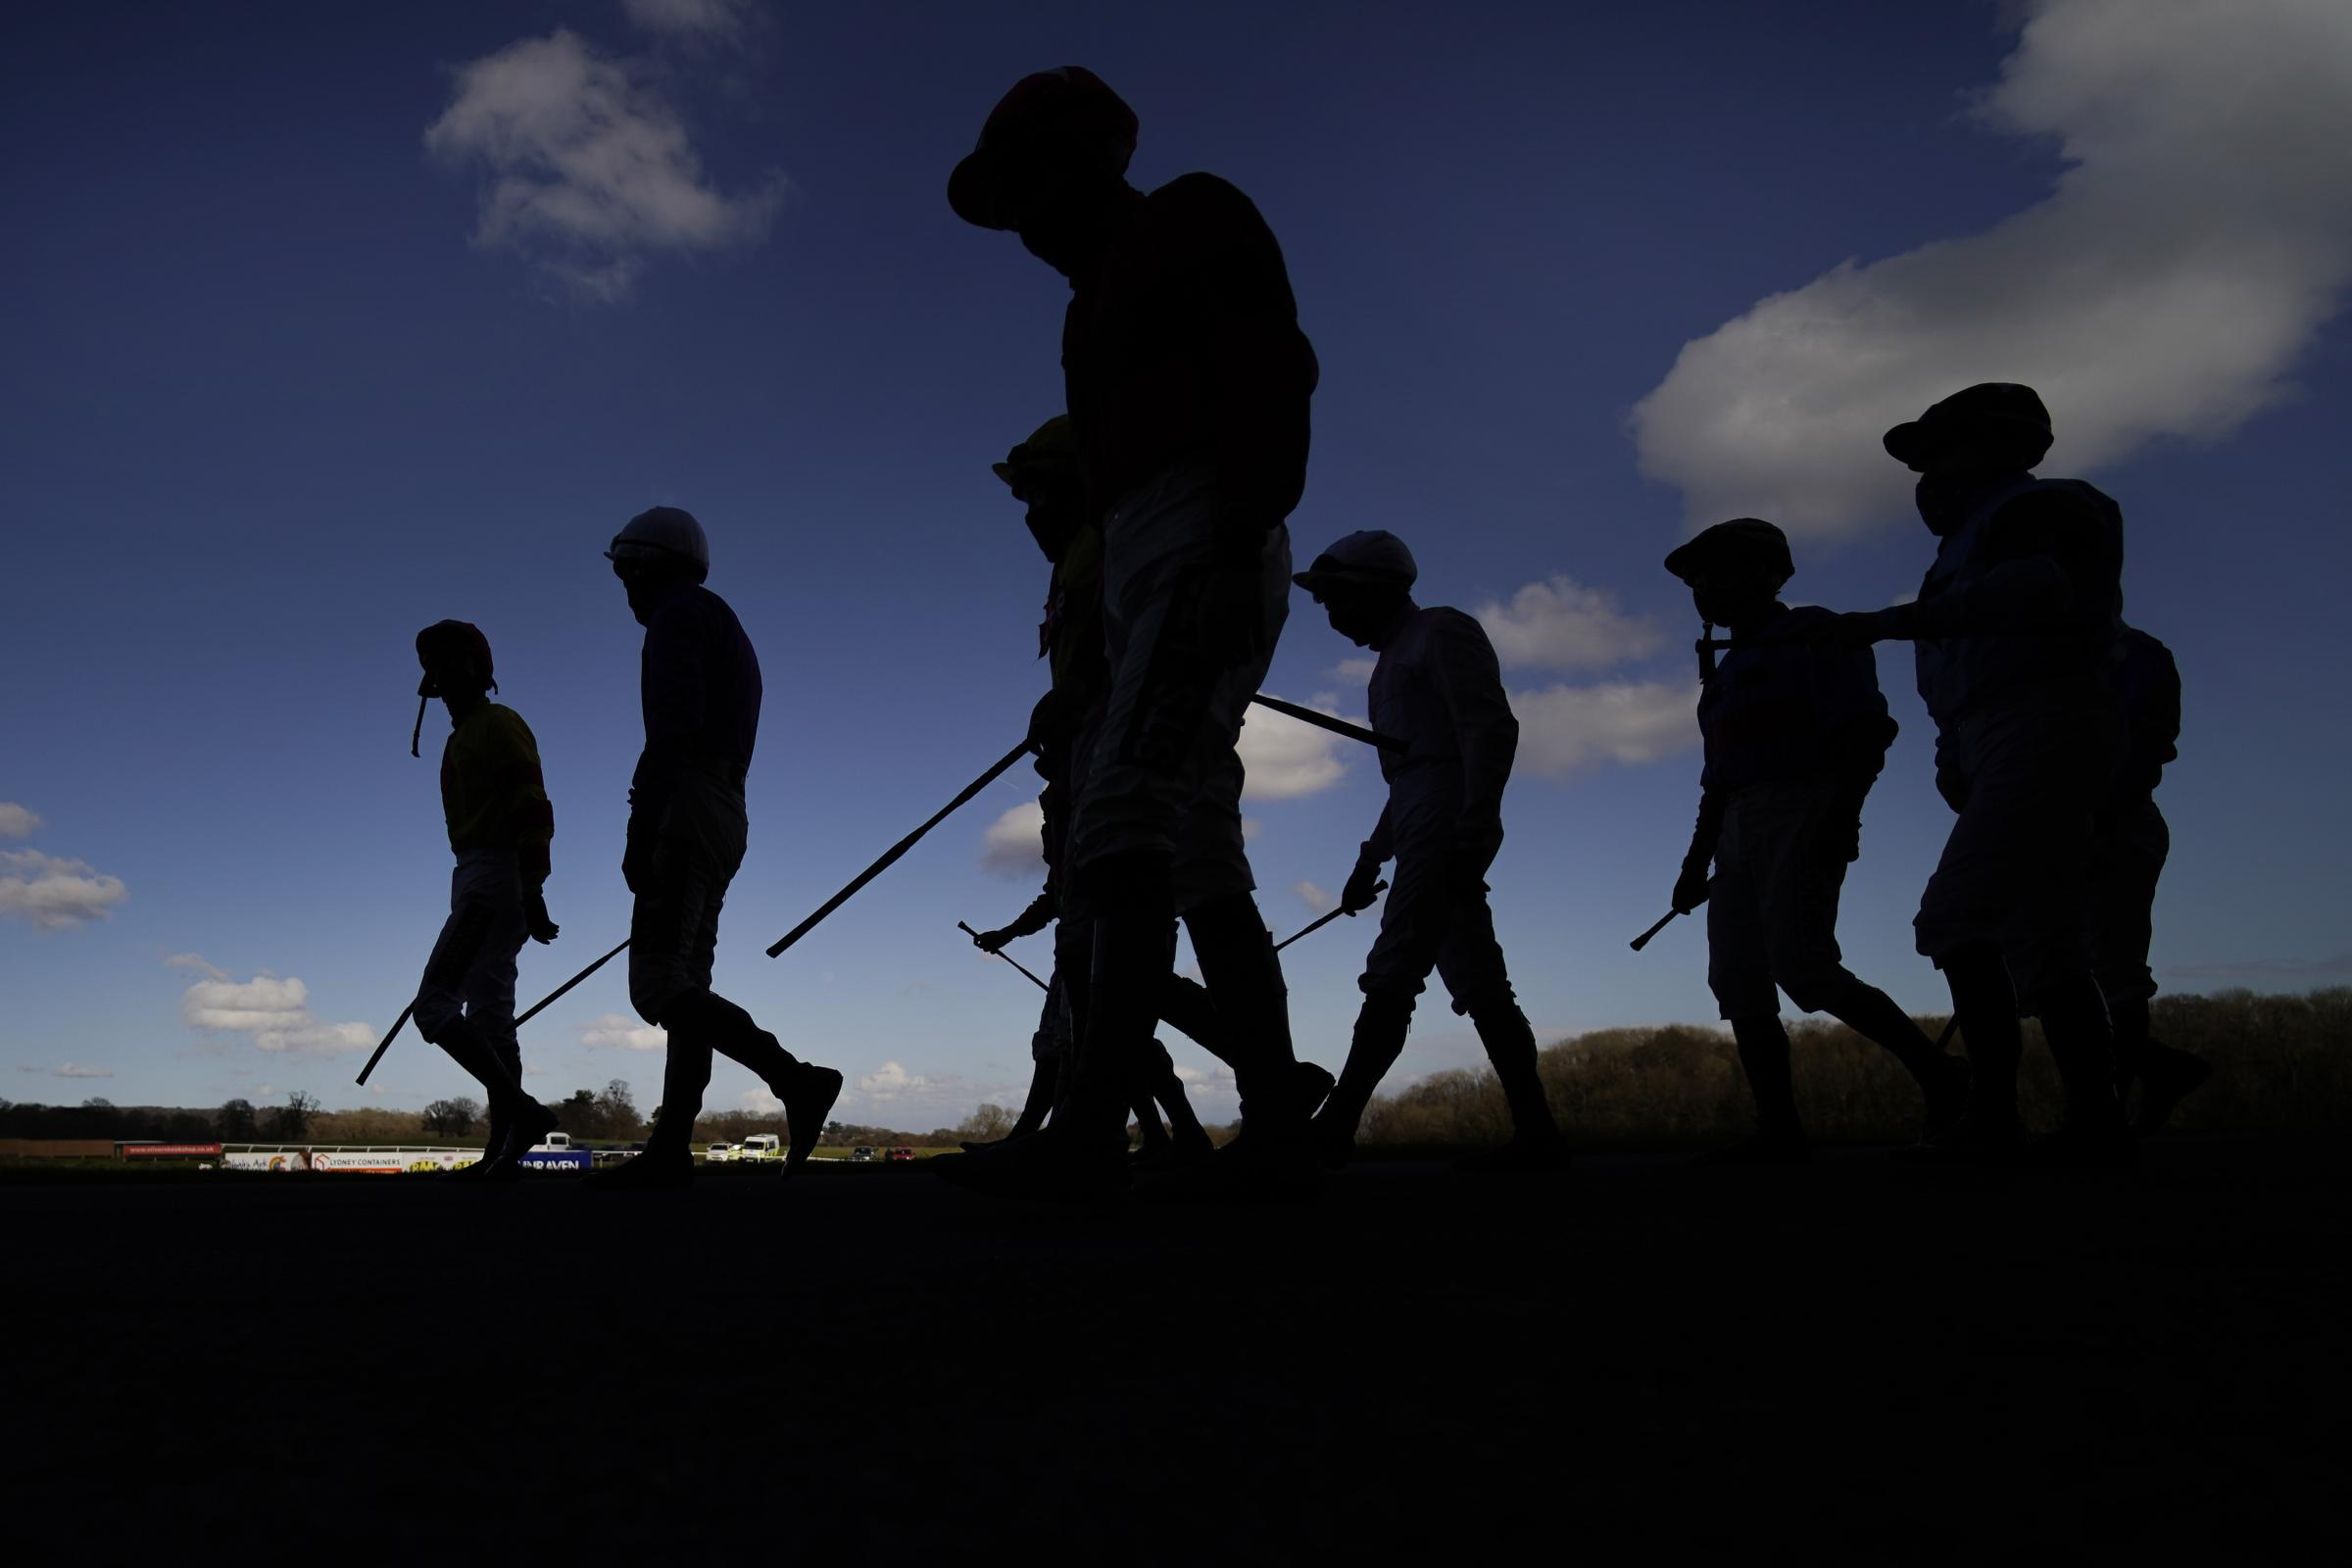 Jockeys make their way to the parade ring at Chepstow Racecourse on Thursday Picture: ALAN CROWHURST/PA